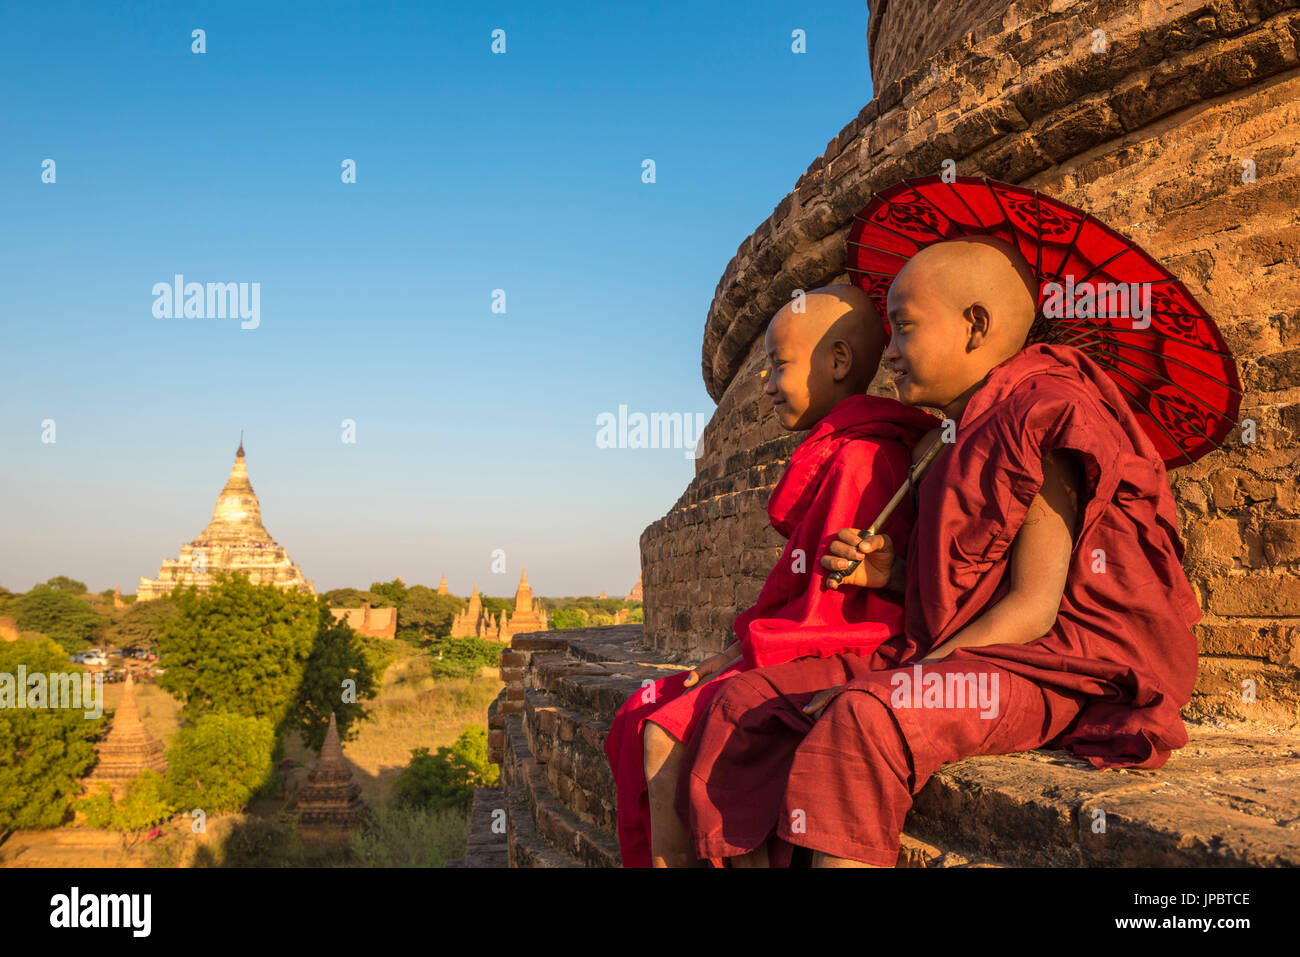 Bagan, Mandalay region, Myanmar (Burma). Two young monks sitting on top of a stupa with the Shwesandaw pagoda in the background. - Stock Image